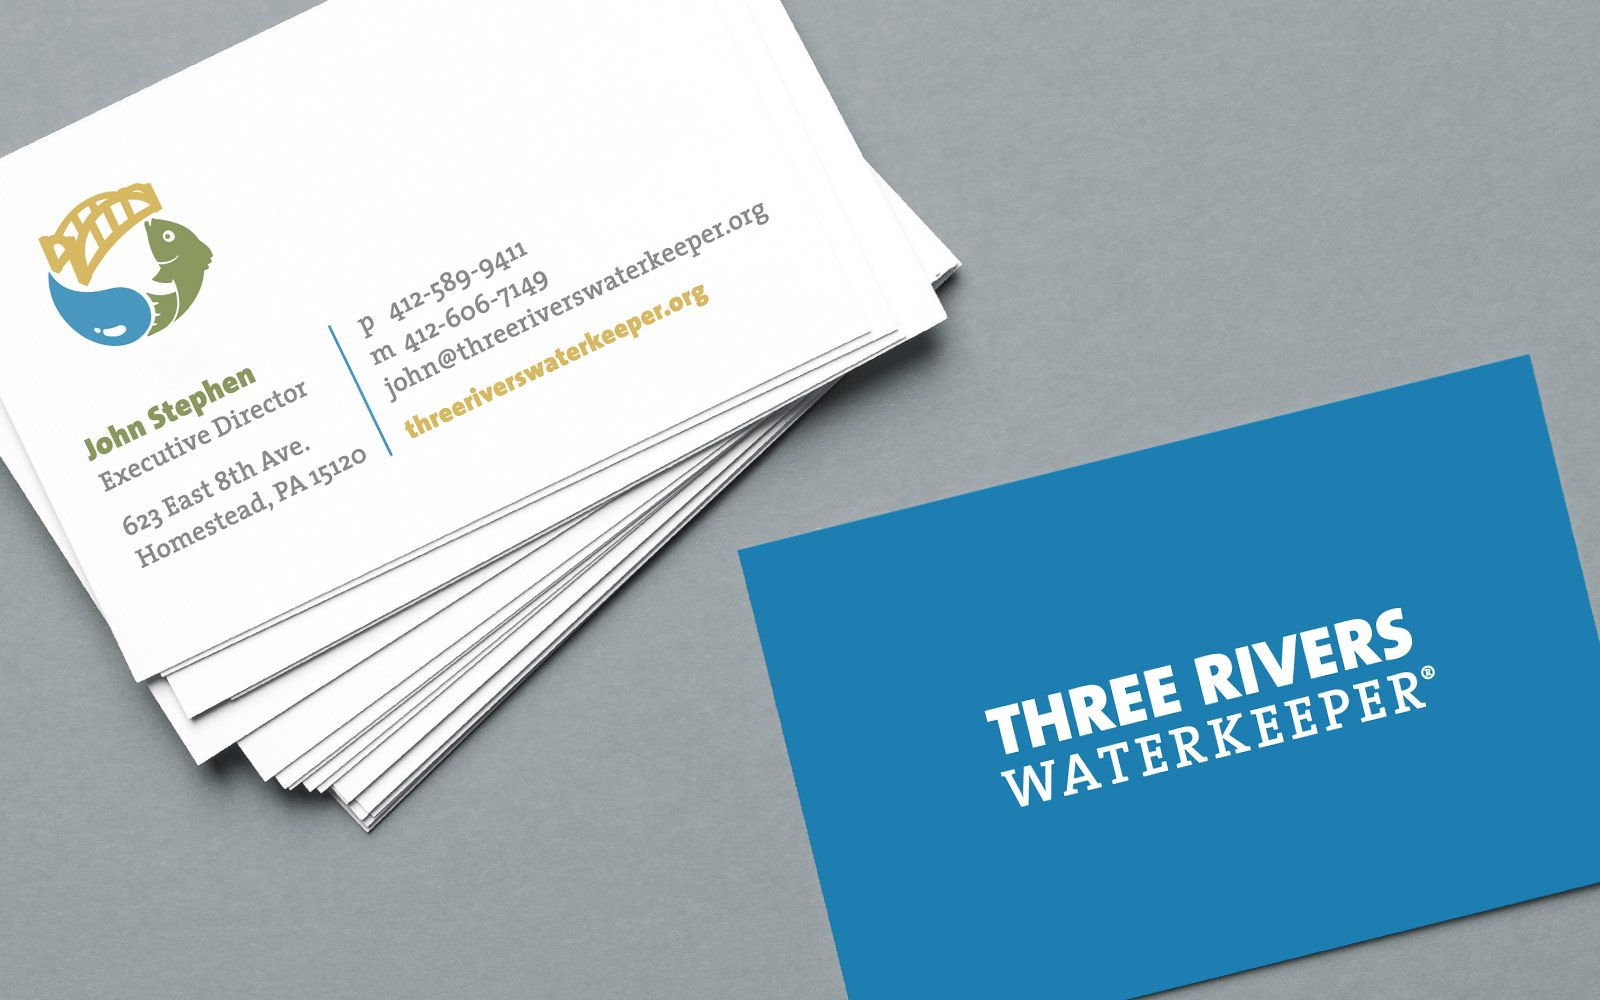 Pin by Paige Engel on ad print work | Pinterest | Business cards